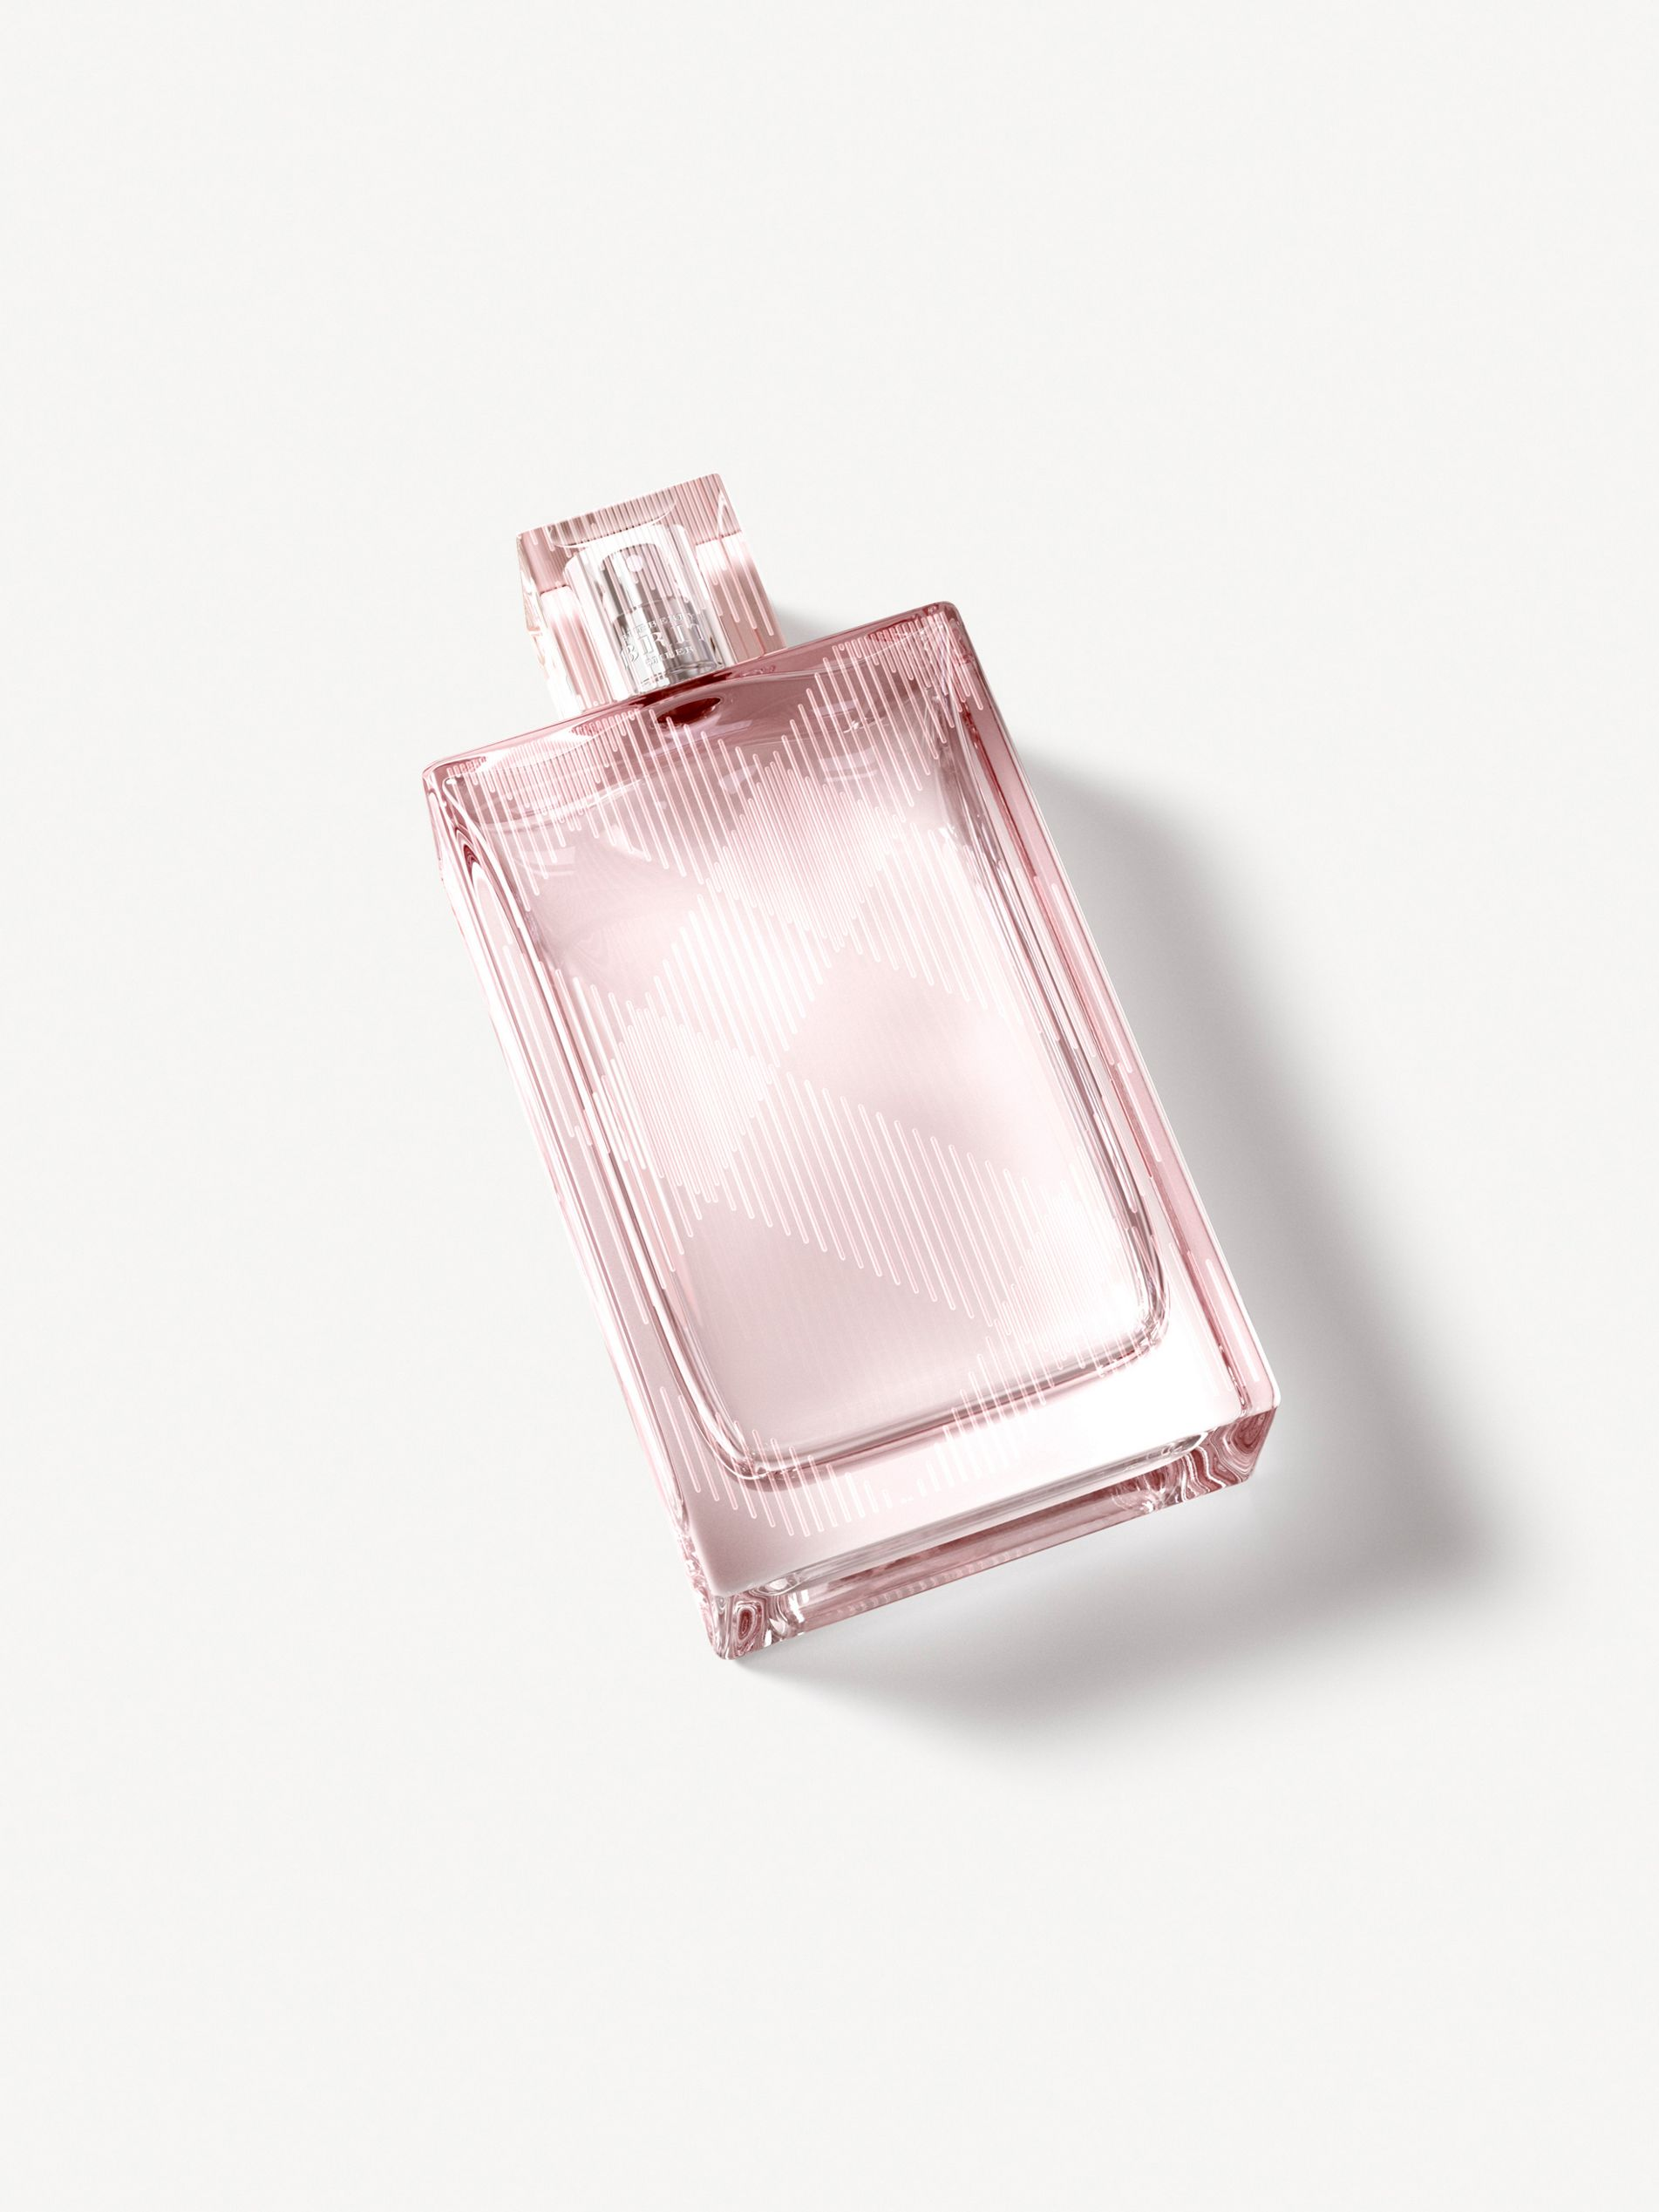 Burberry Brit Sheer 博柏利红粉恋歌女士香氛 100ml 产品图片01